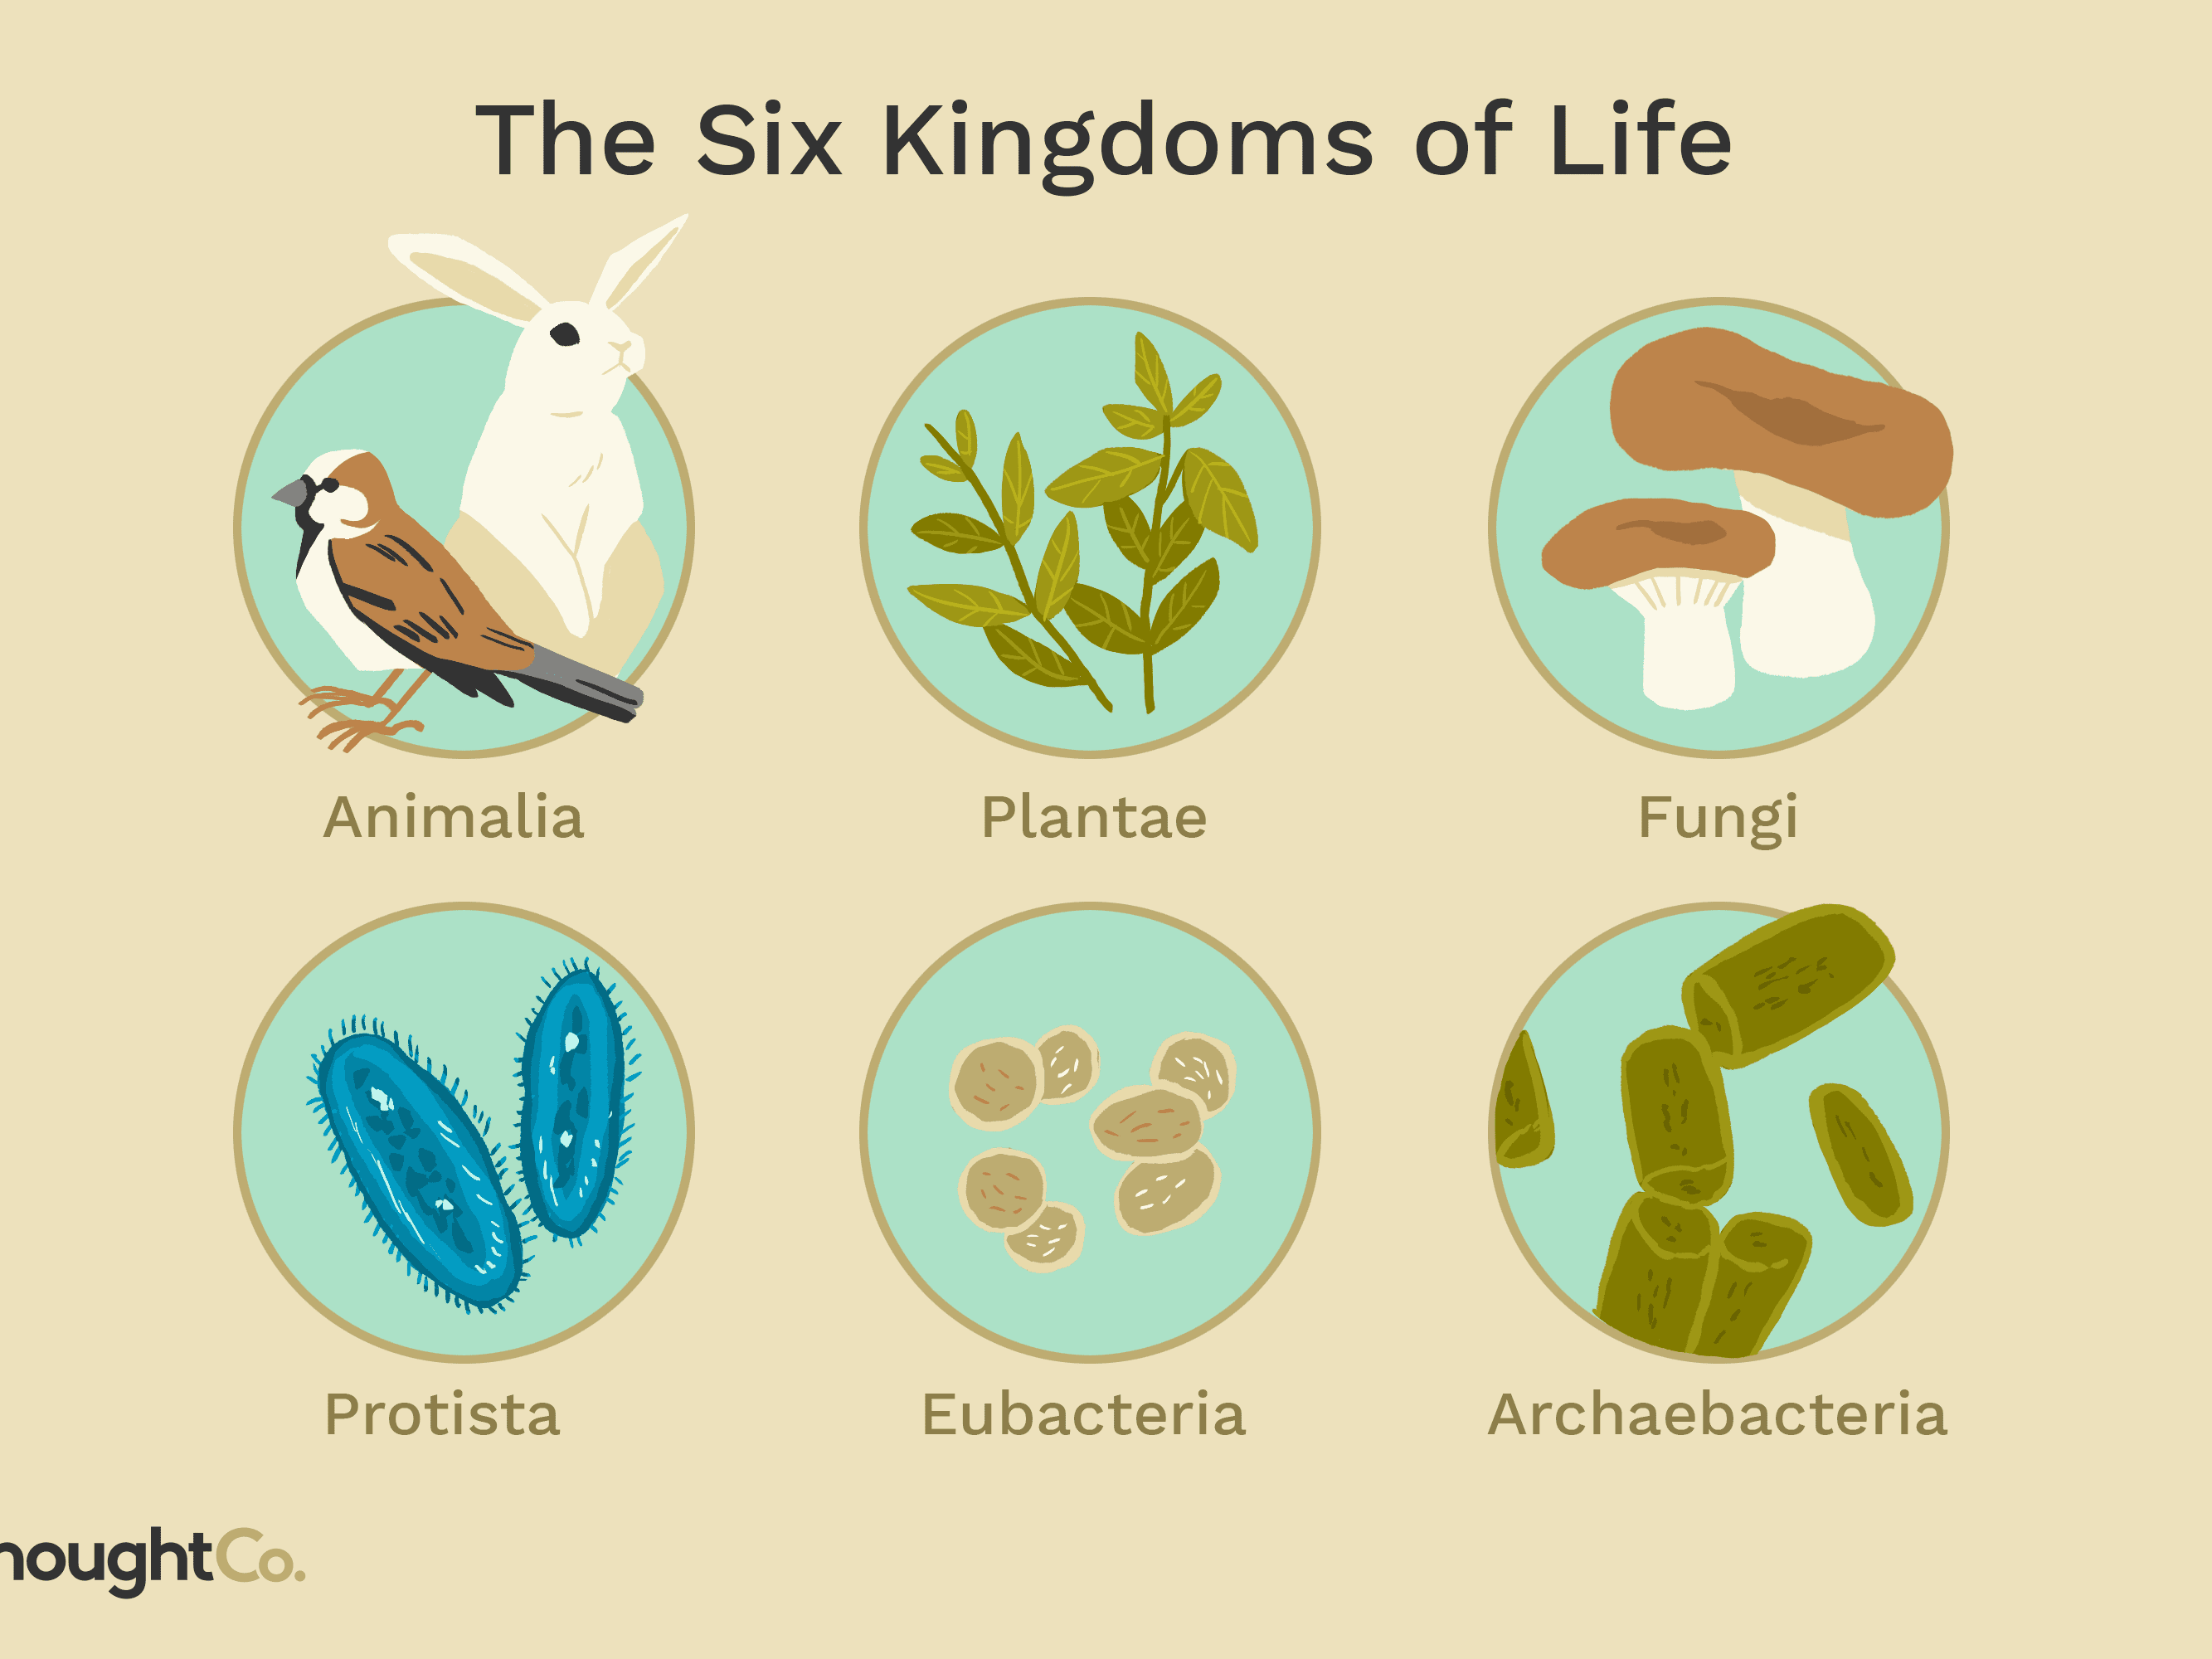 What Kingdom Did The First Organisms On Earth Belong To